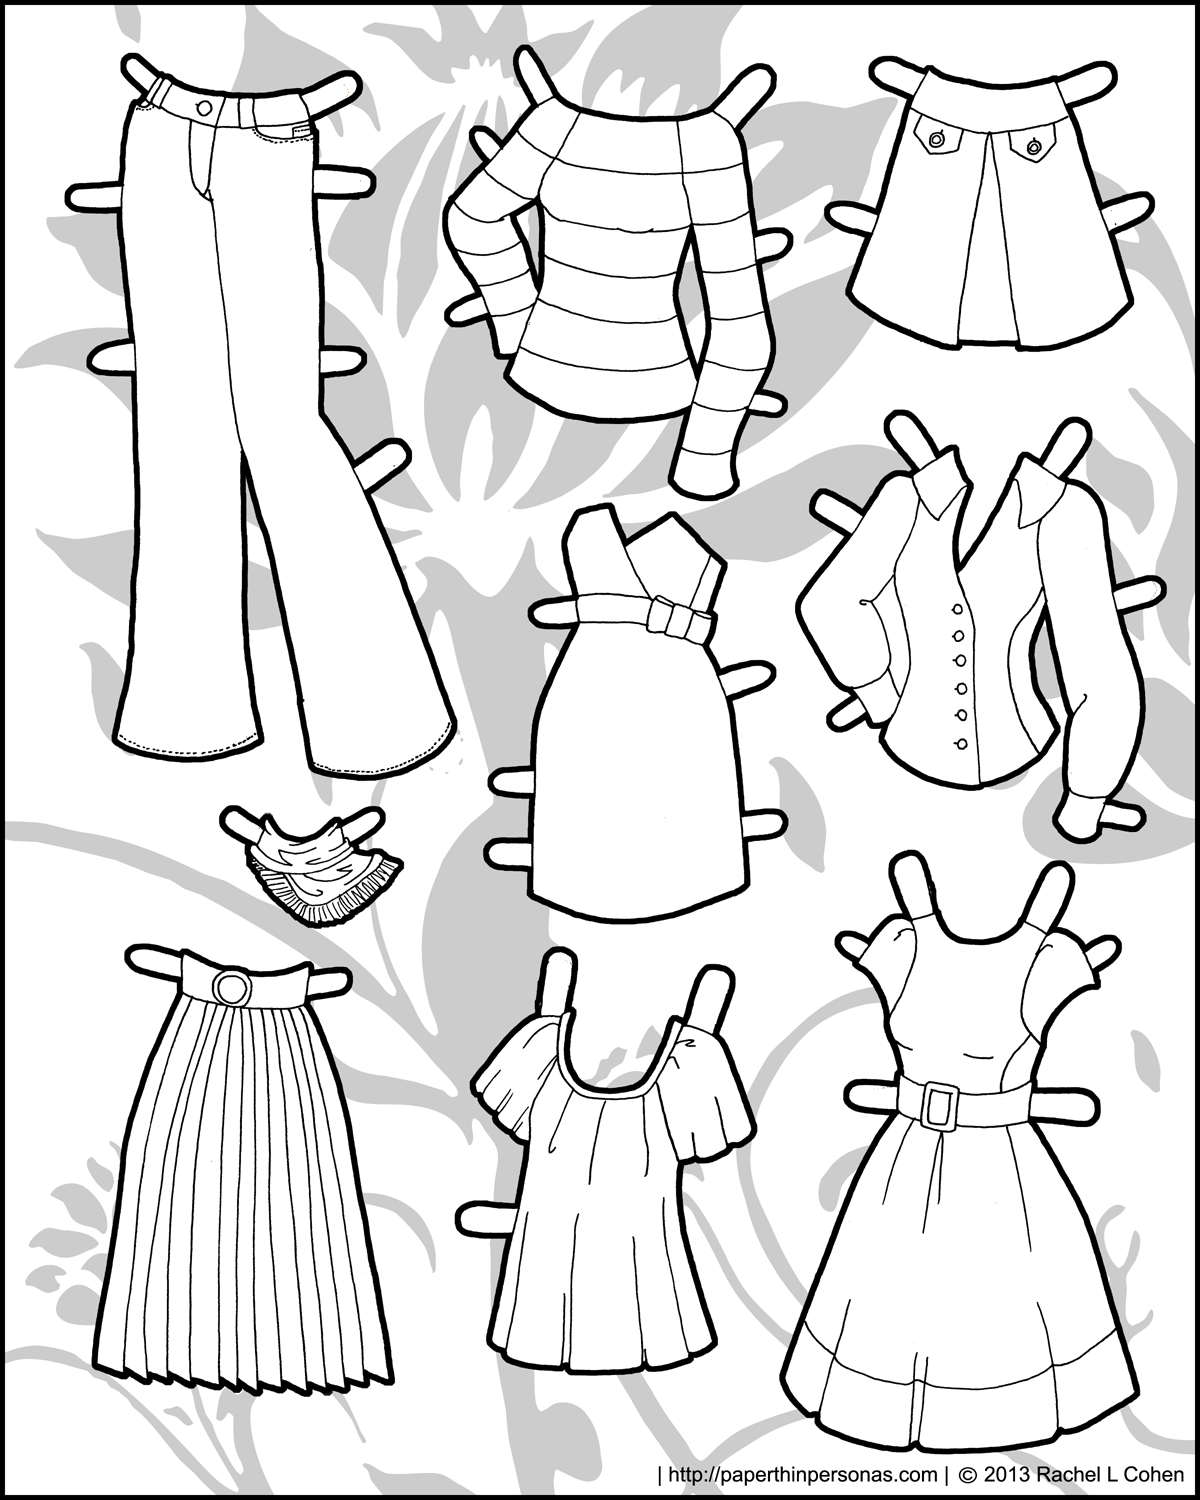 paper doll dresses In an age where television and computers seem to encroach in every part of our lives, there is something wonderfully simple about paper dolls with no.